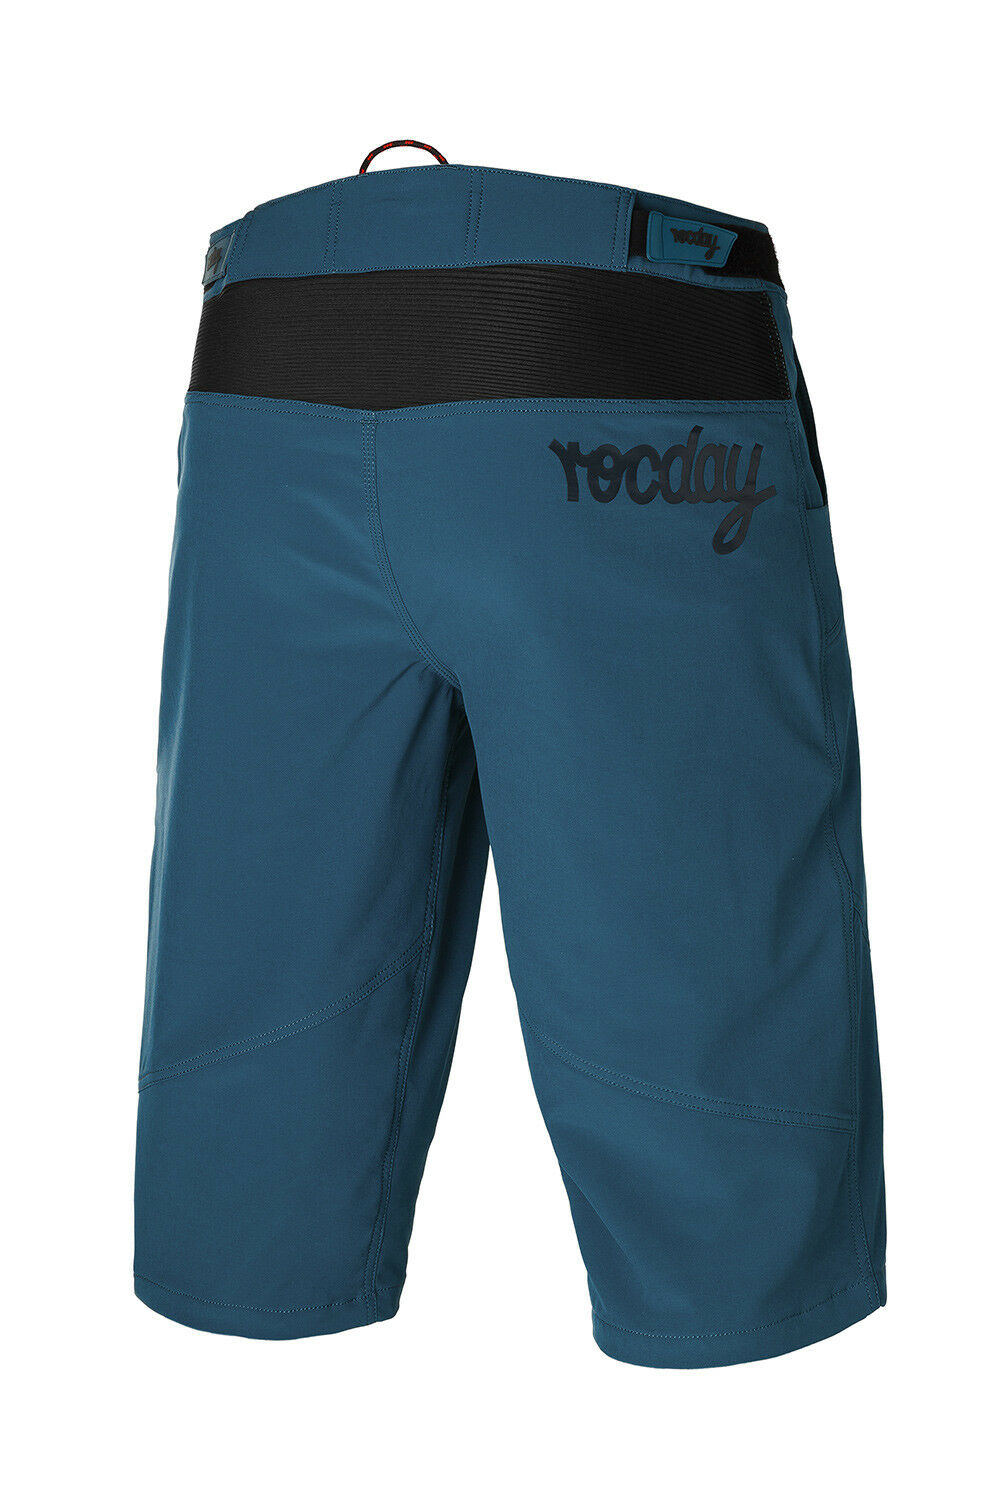 ROCDAY Roc Lite Shorts   bluee XL